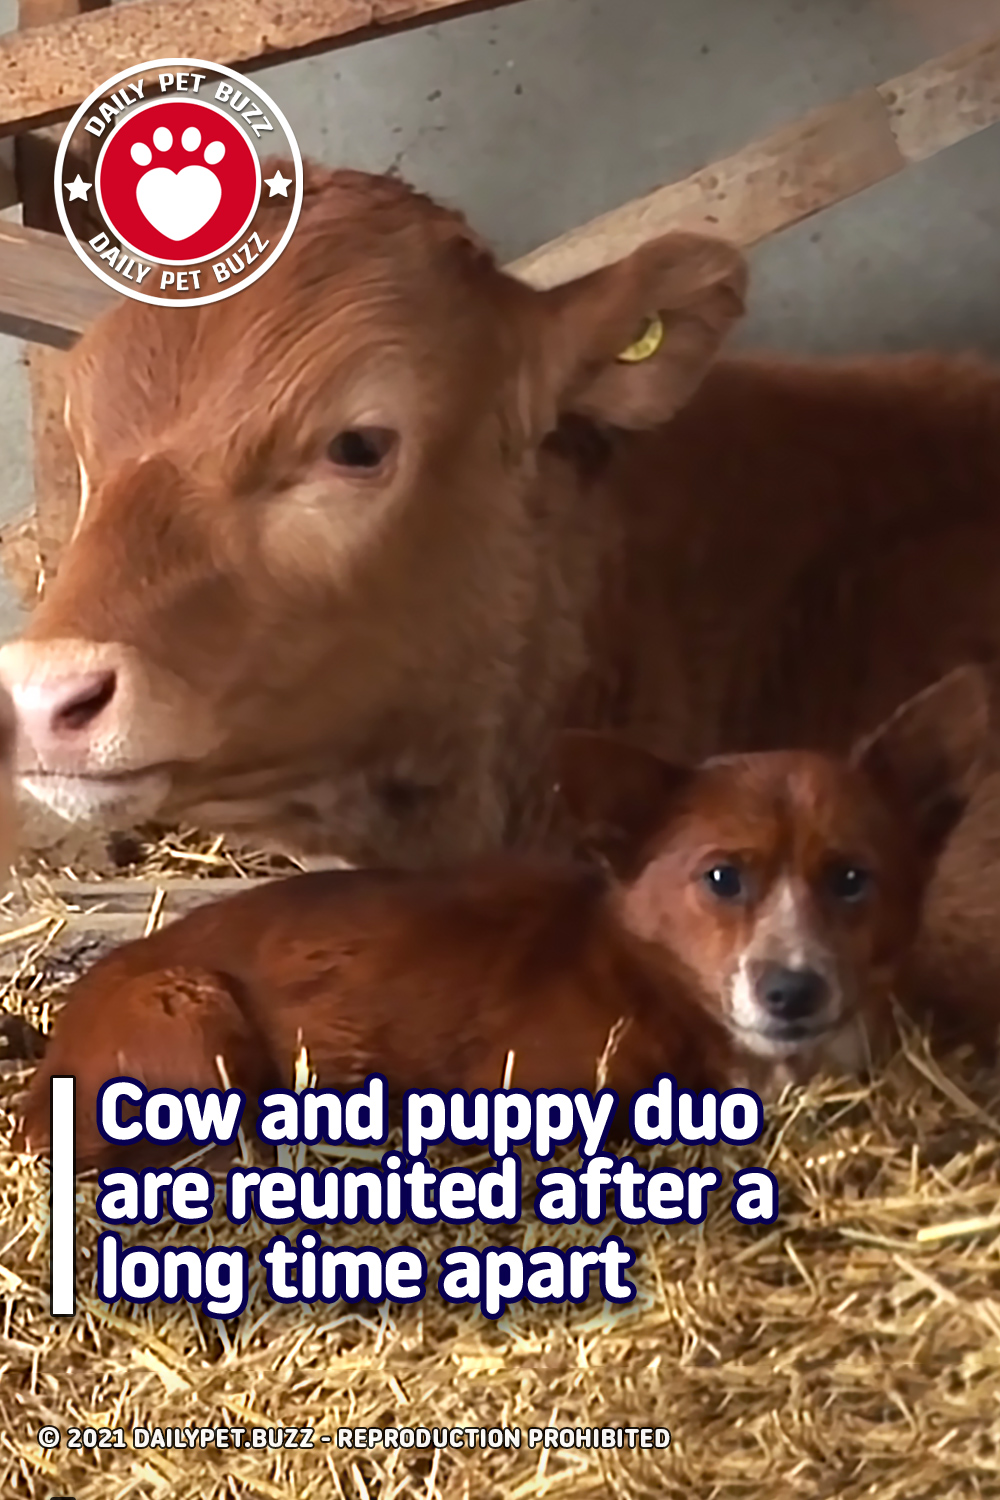 Cow and puppy duo are reunited after a long time apart